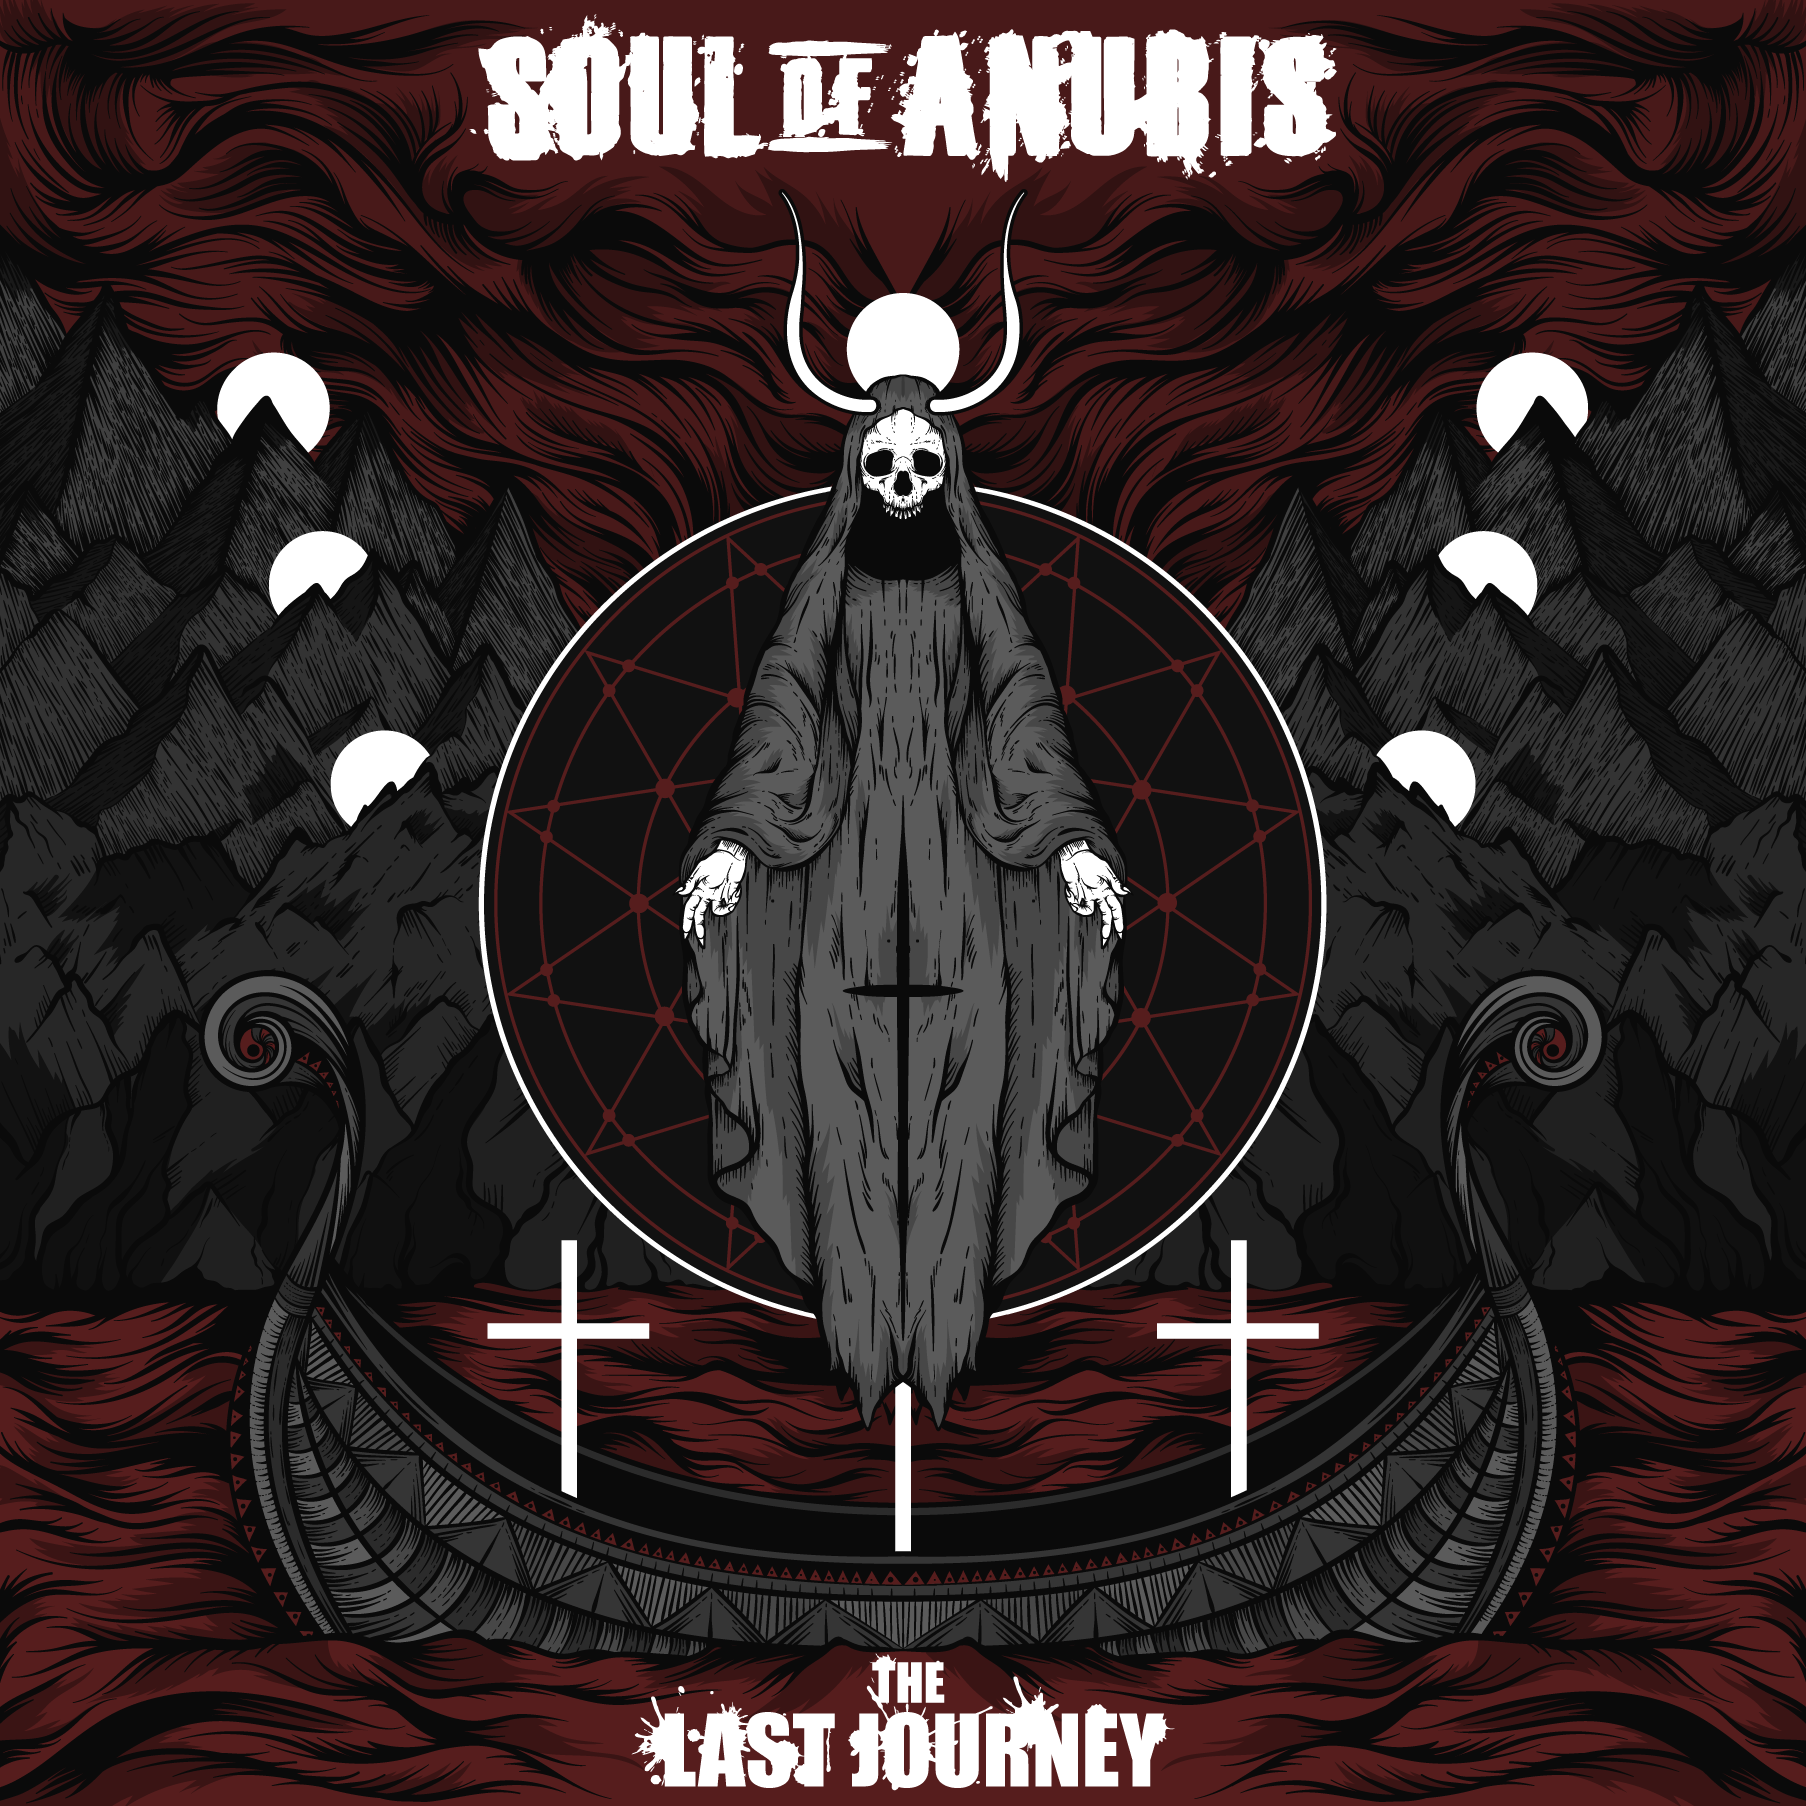 SOUL OF ANUBIS - The Last Journey